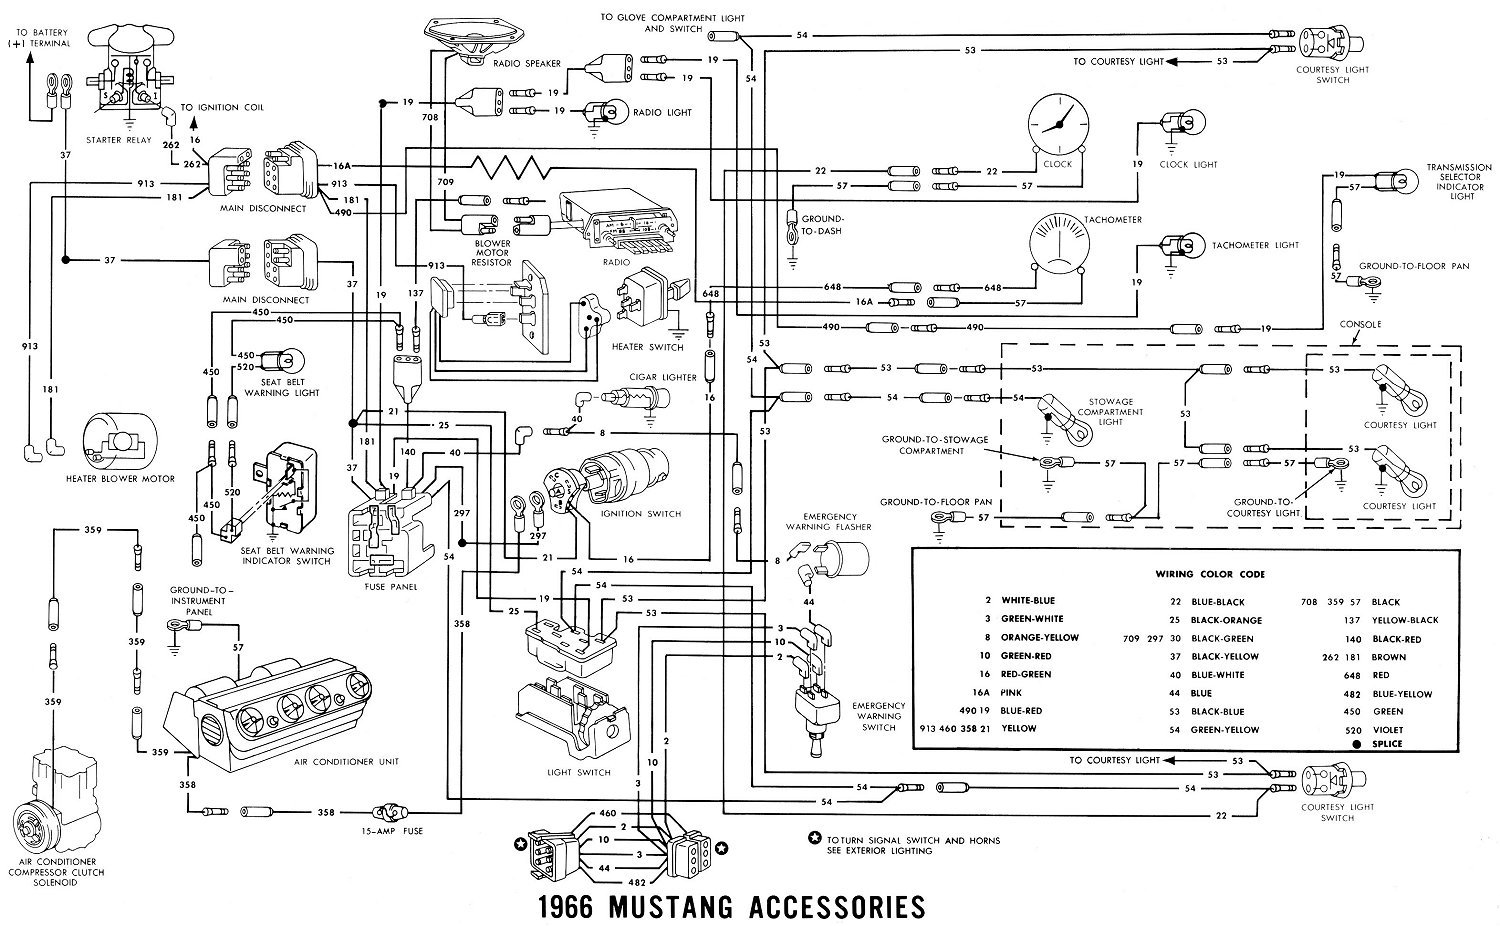 wiring diagram for nova the wiring diagram wiring diagram for 67 nova wiring car wiring diagram wiring diagram